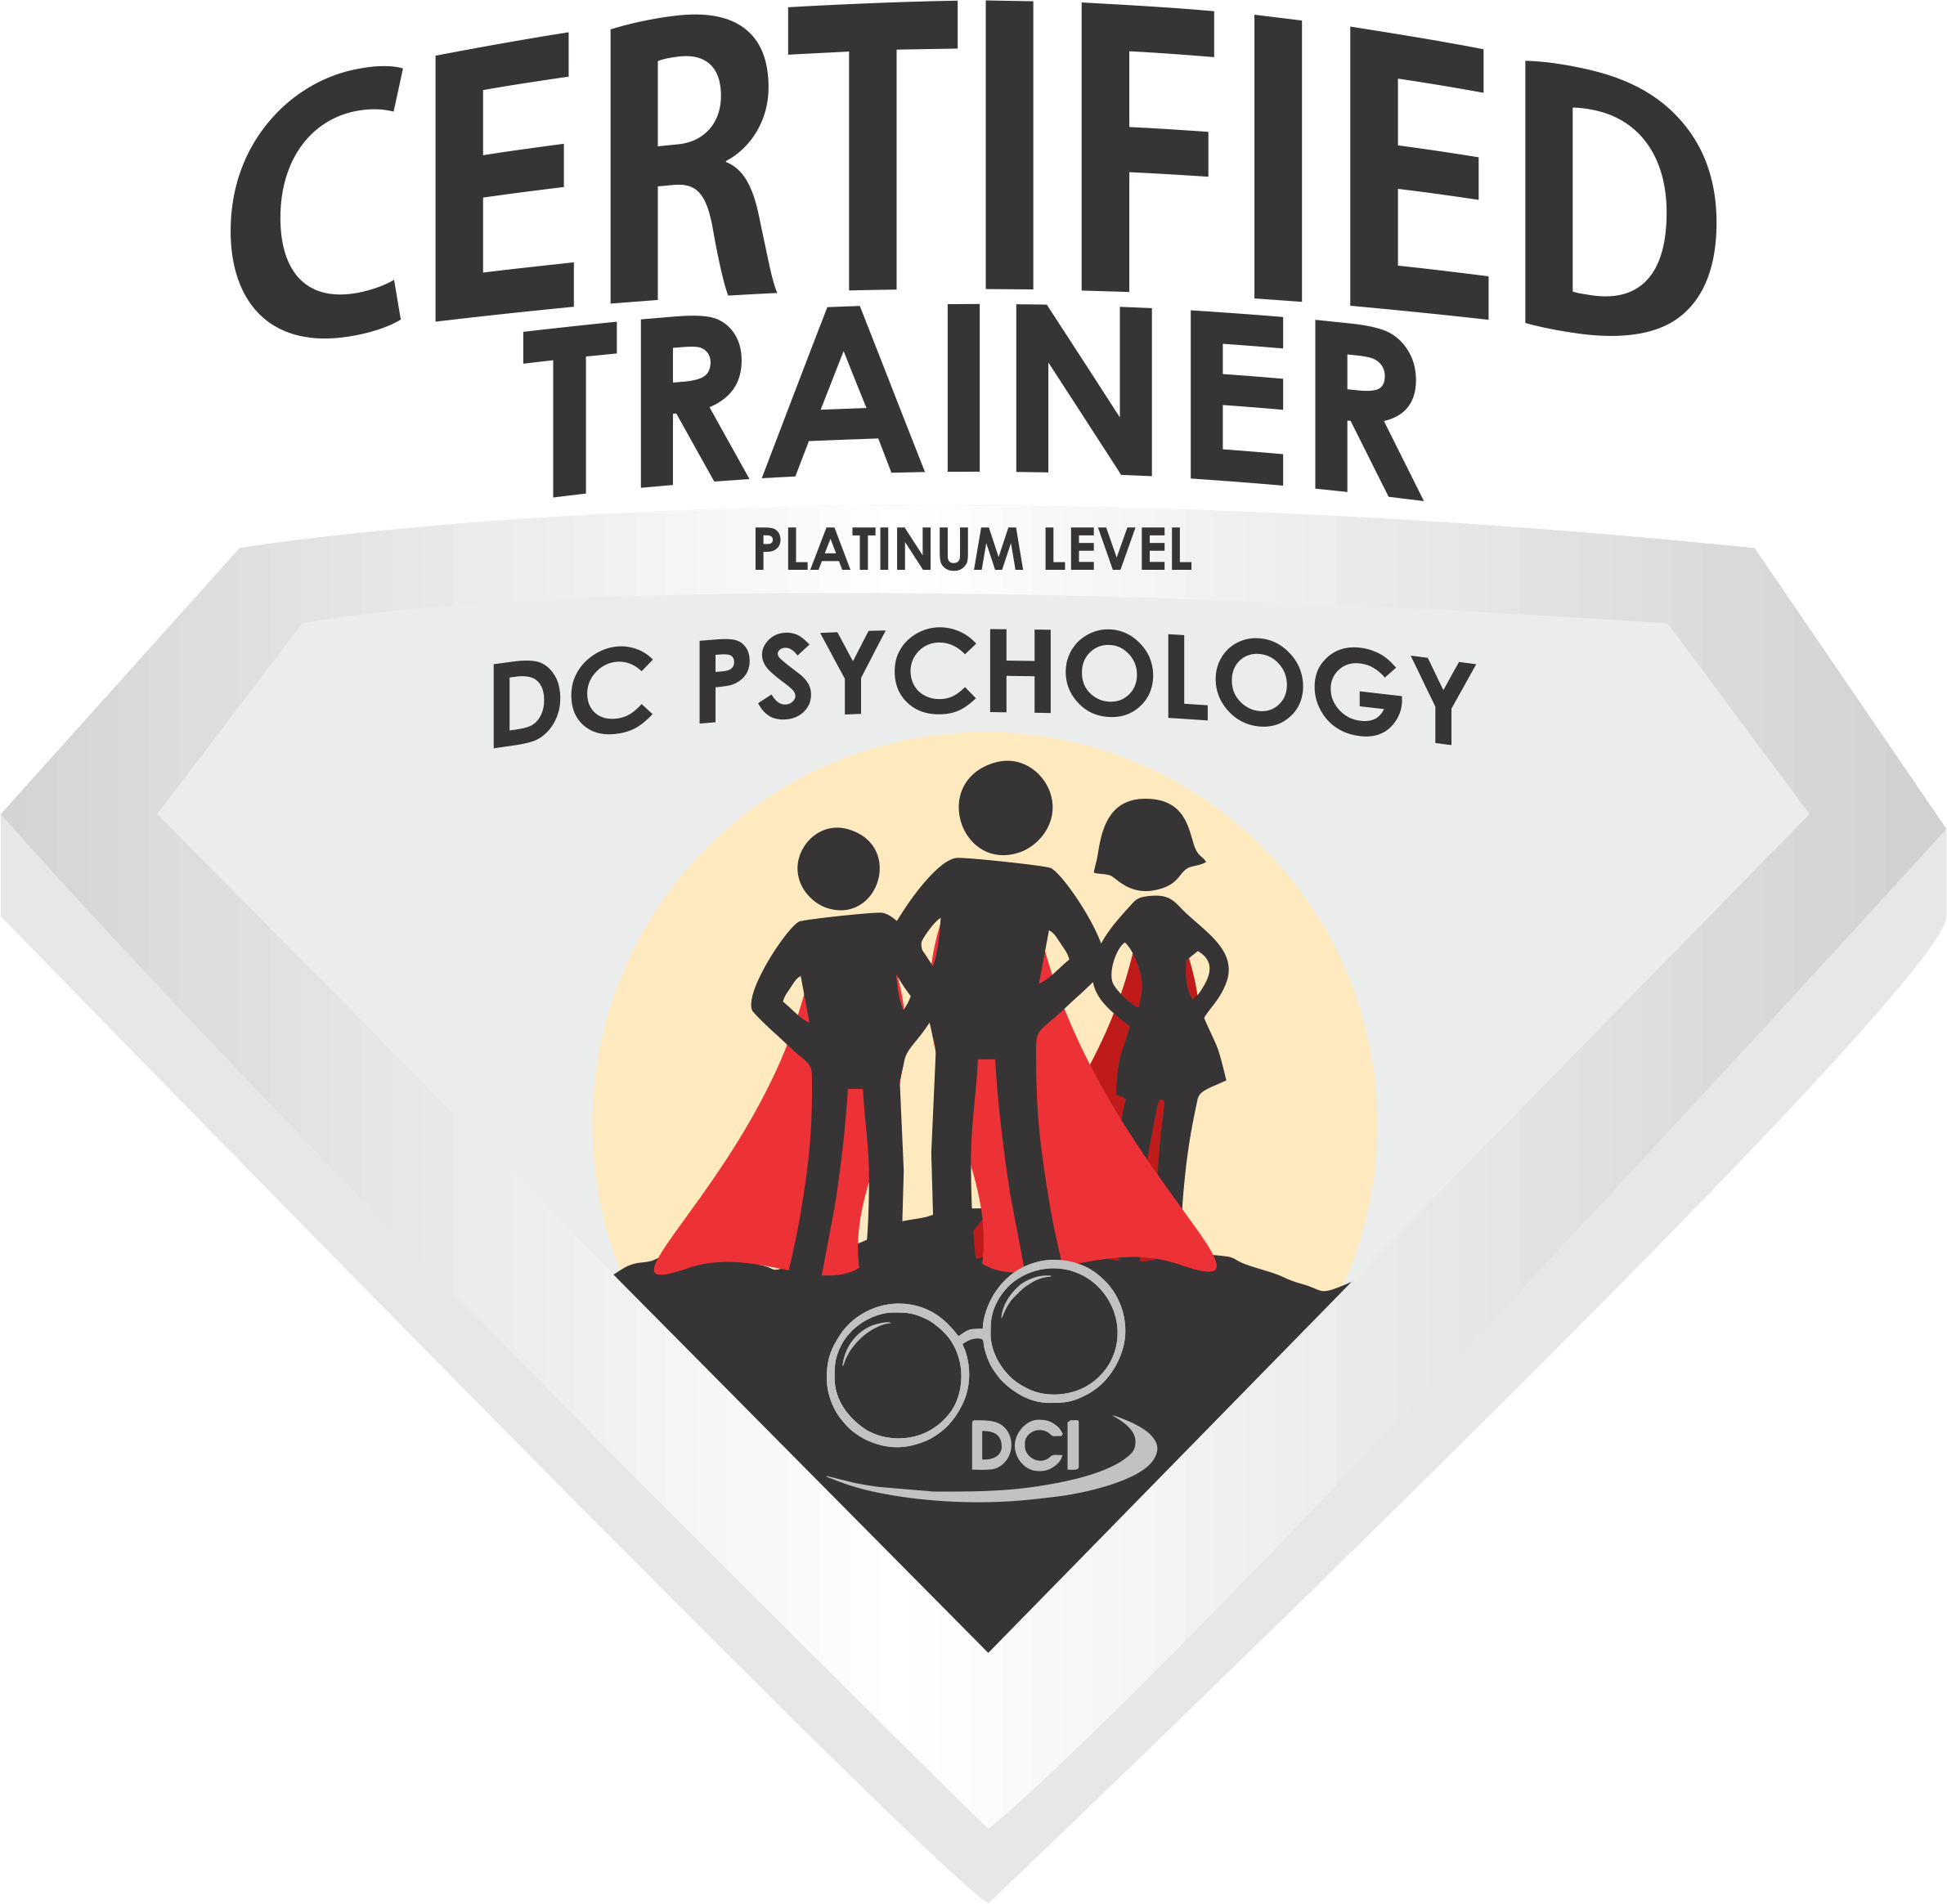 Achievement-Level-Certification-certified-trainer-platinum